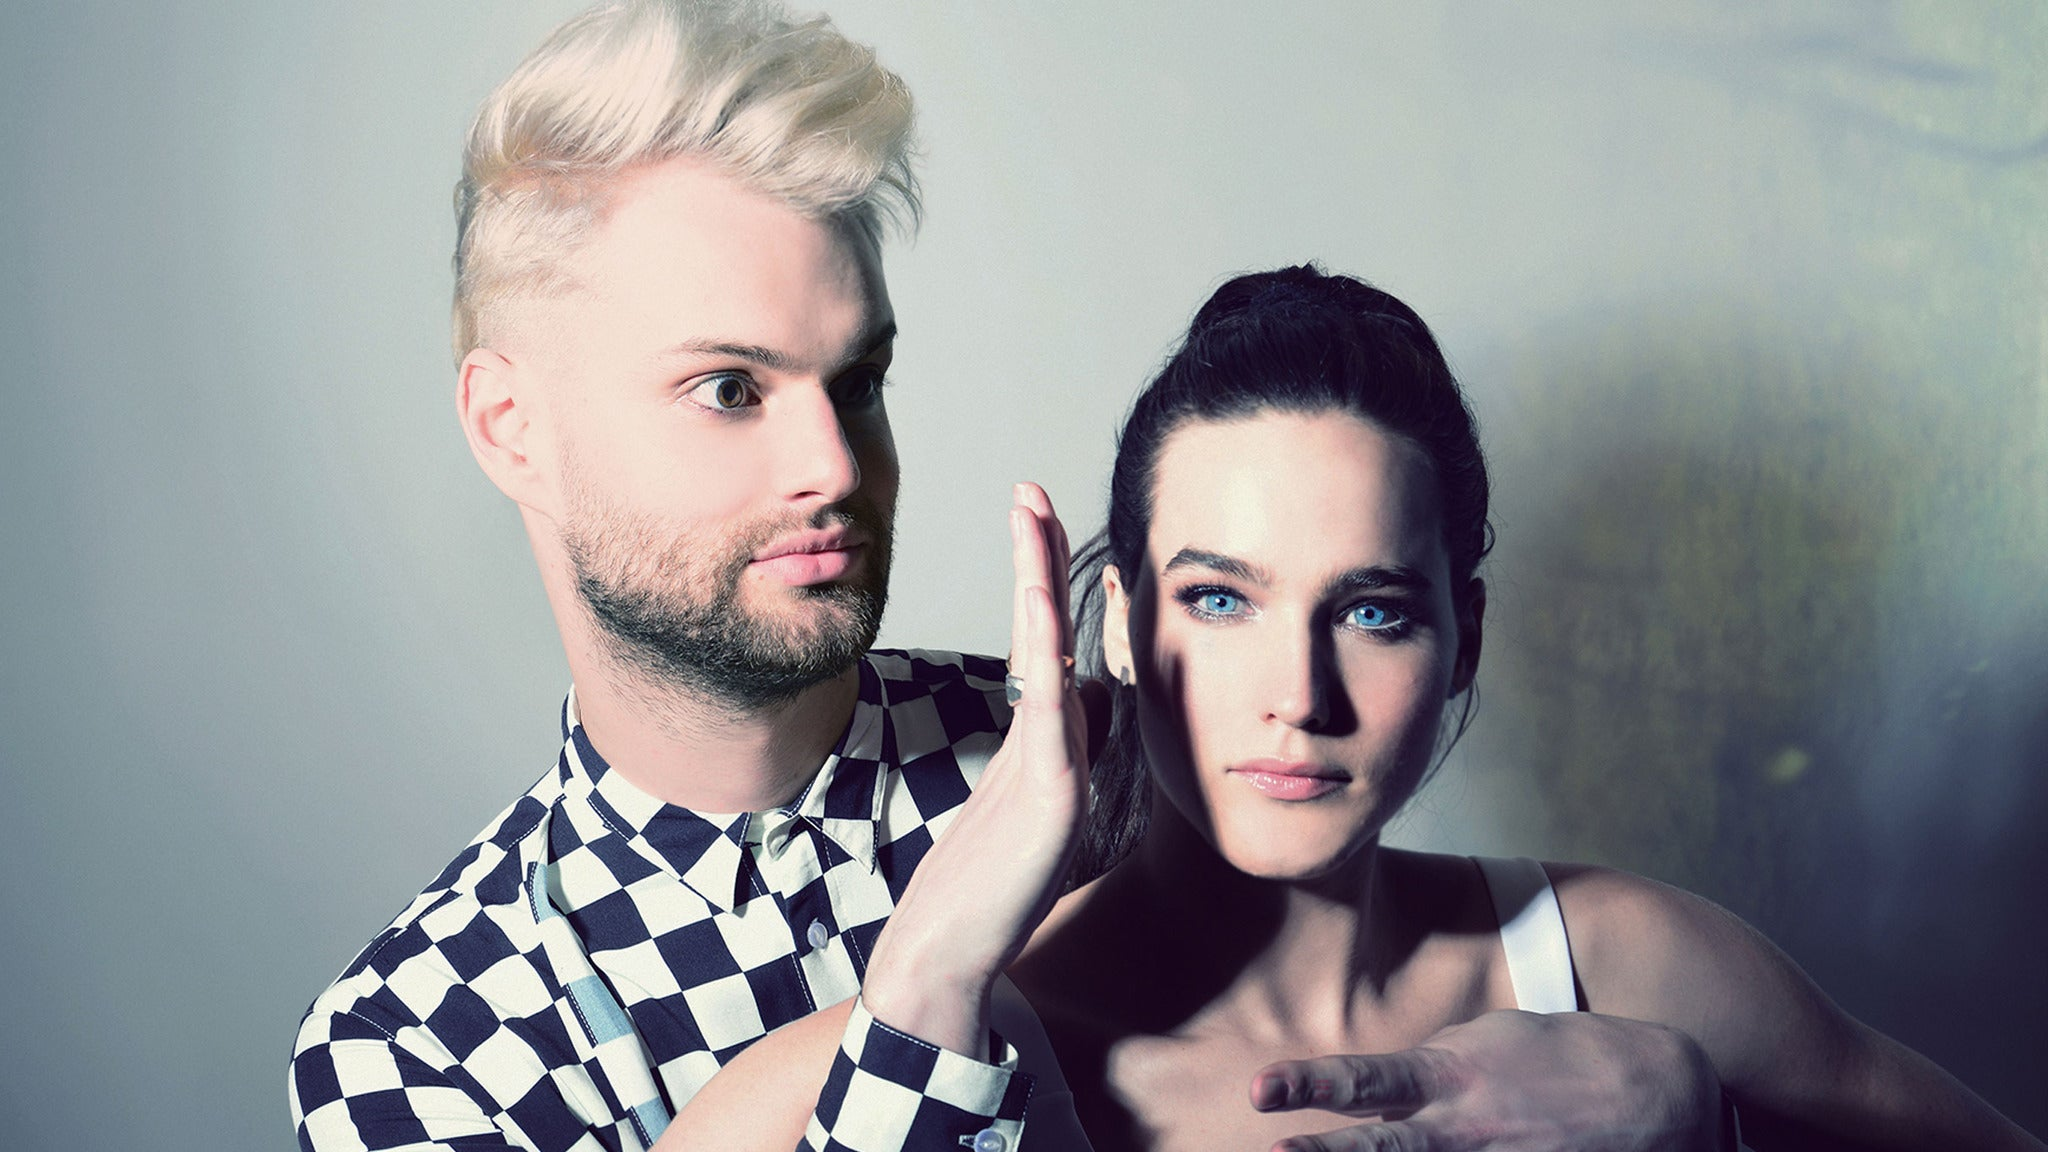 Sofi Tukker at The Fox Theater at Foxwoods Resort Casino - Mashantucket, CT 06355